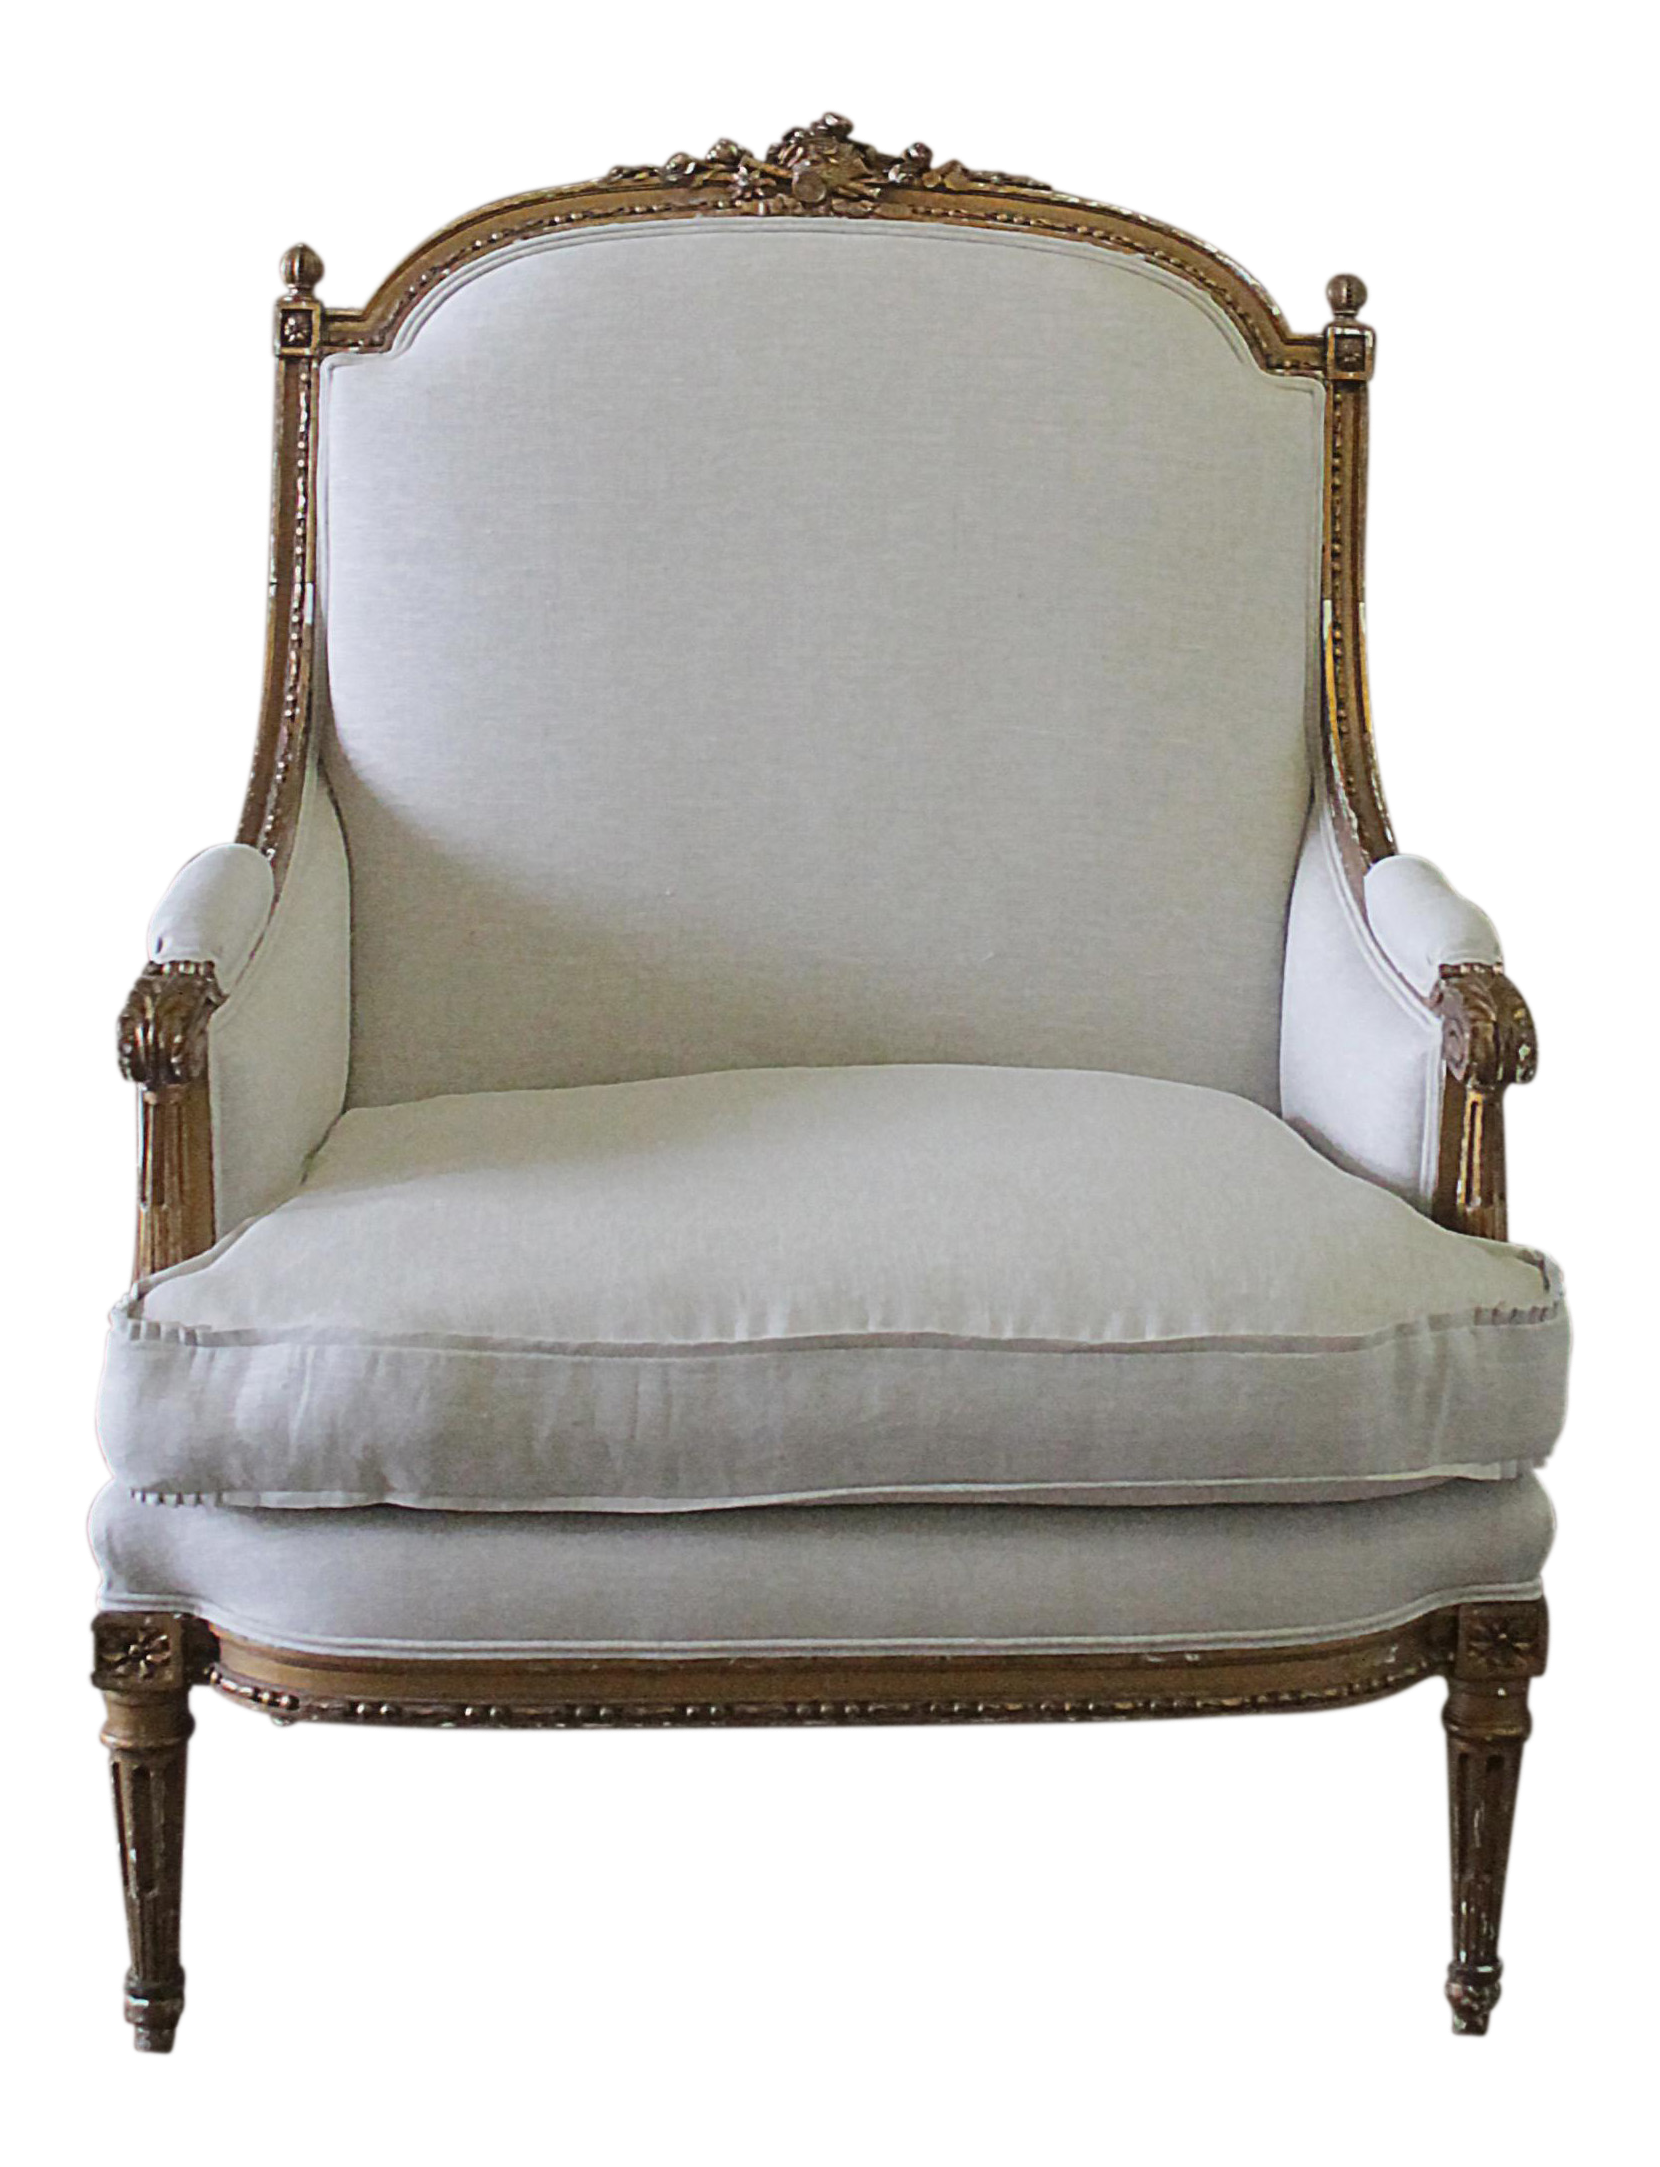 19th Century Antique Giltwood Louis XVI Style Bergere Chair